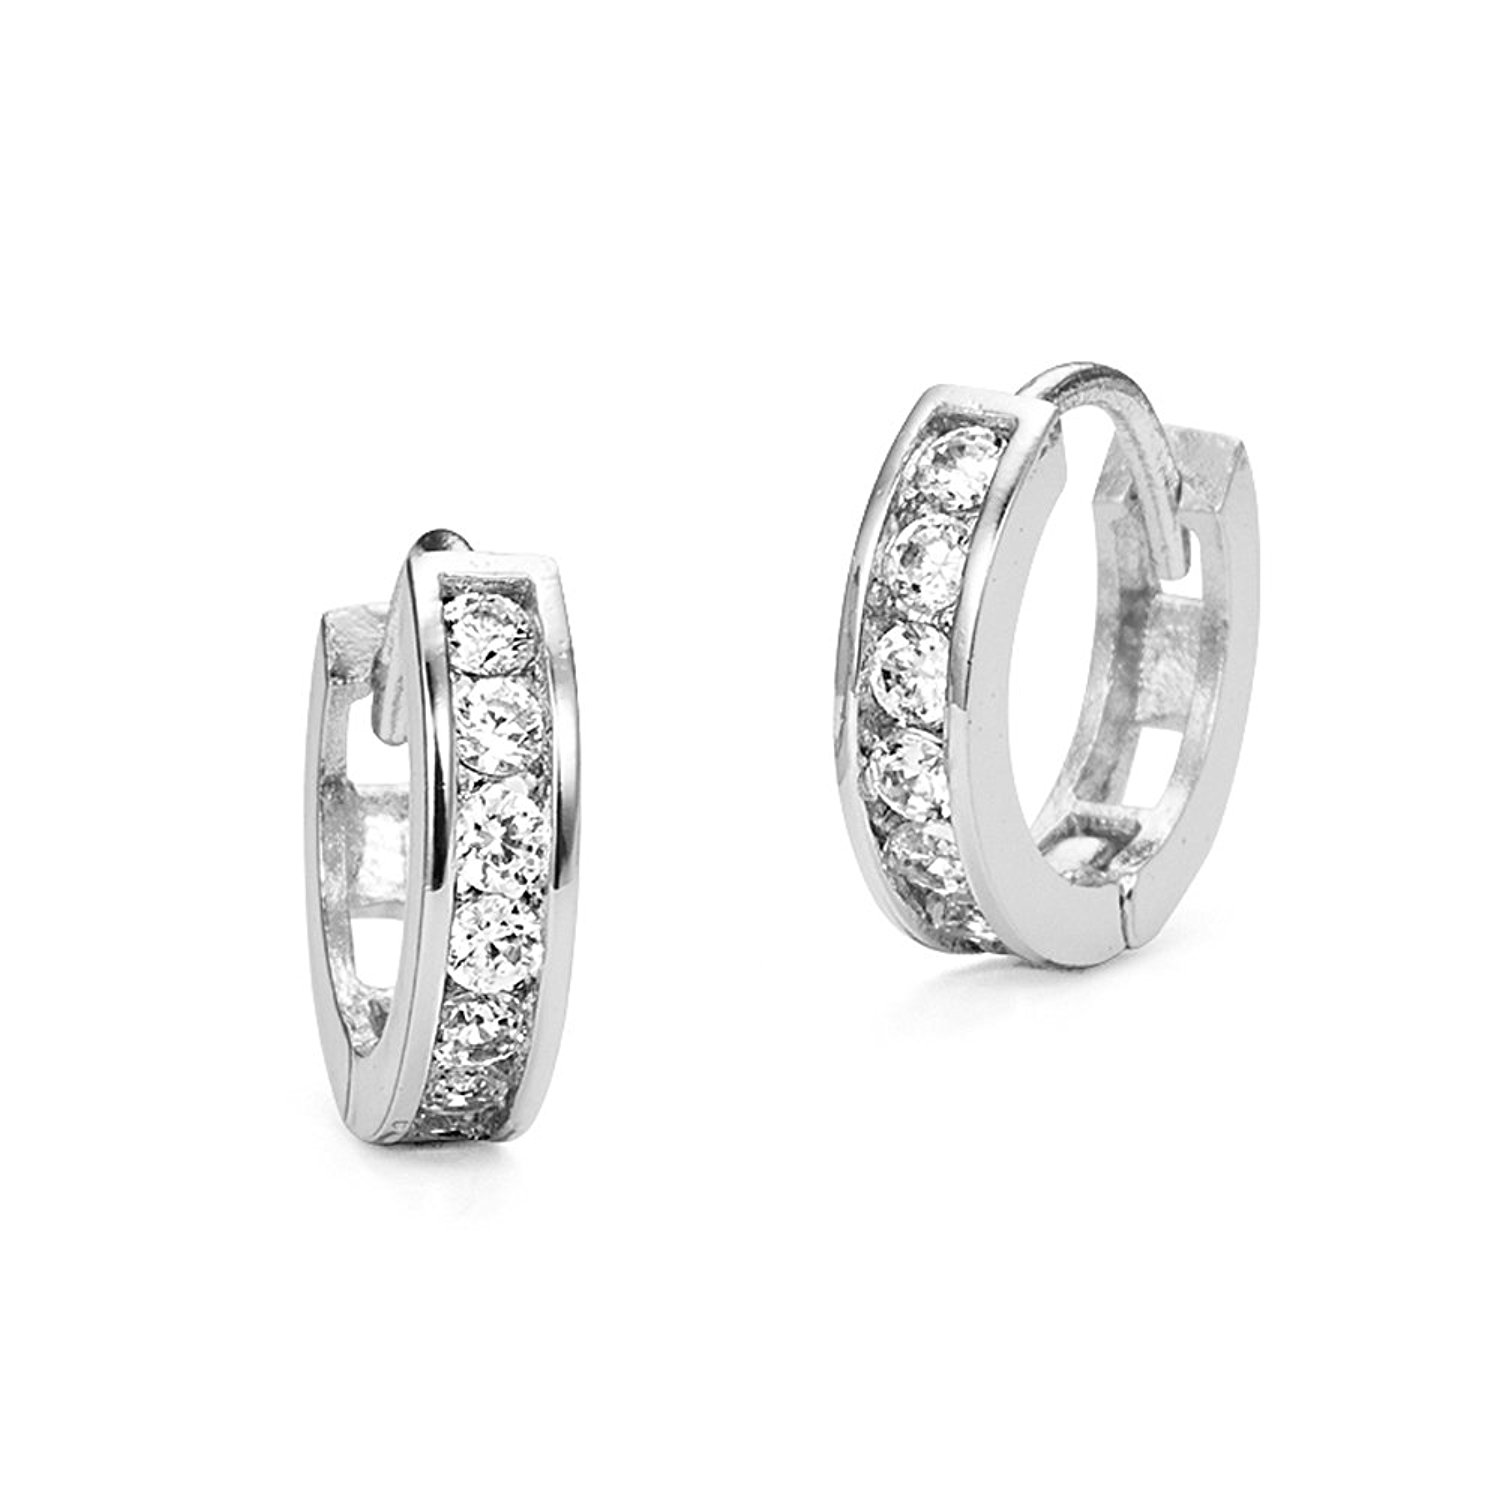 Sterling Silver Rhodium Plated 3mm x 13mm Cubic Zirconia Channel Huggie Earrings